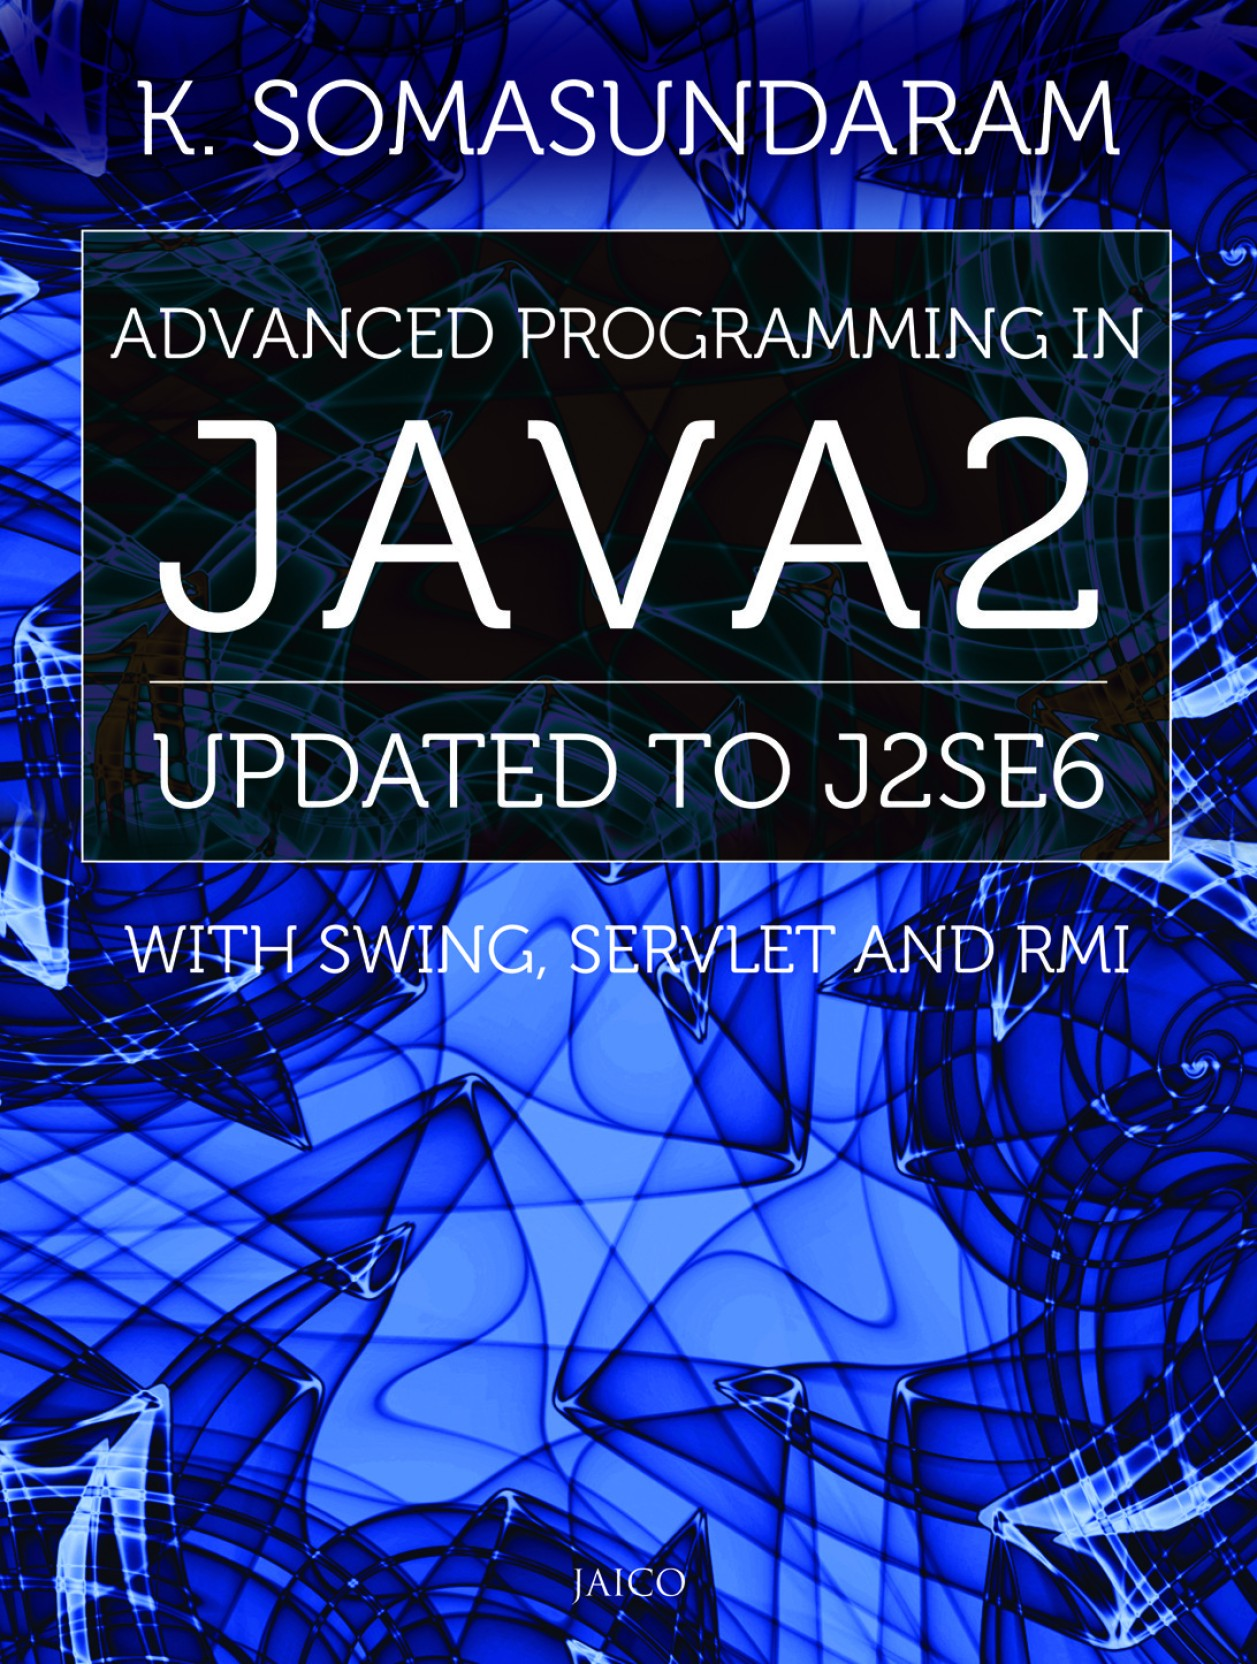 Advanced Programming in Java2: Updated To J2SE6 with Swing, Servlet